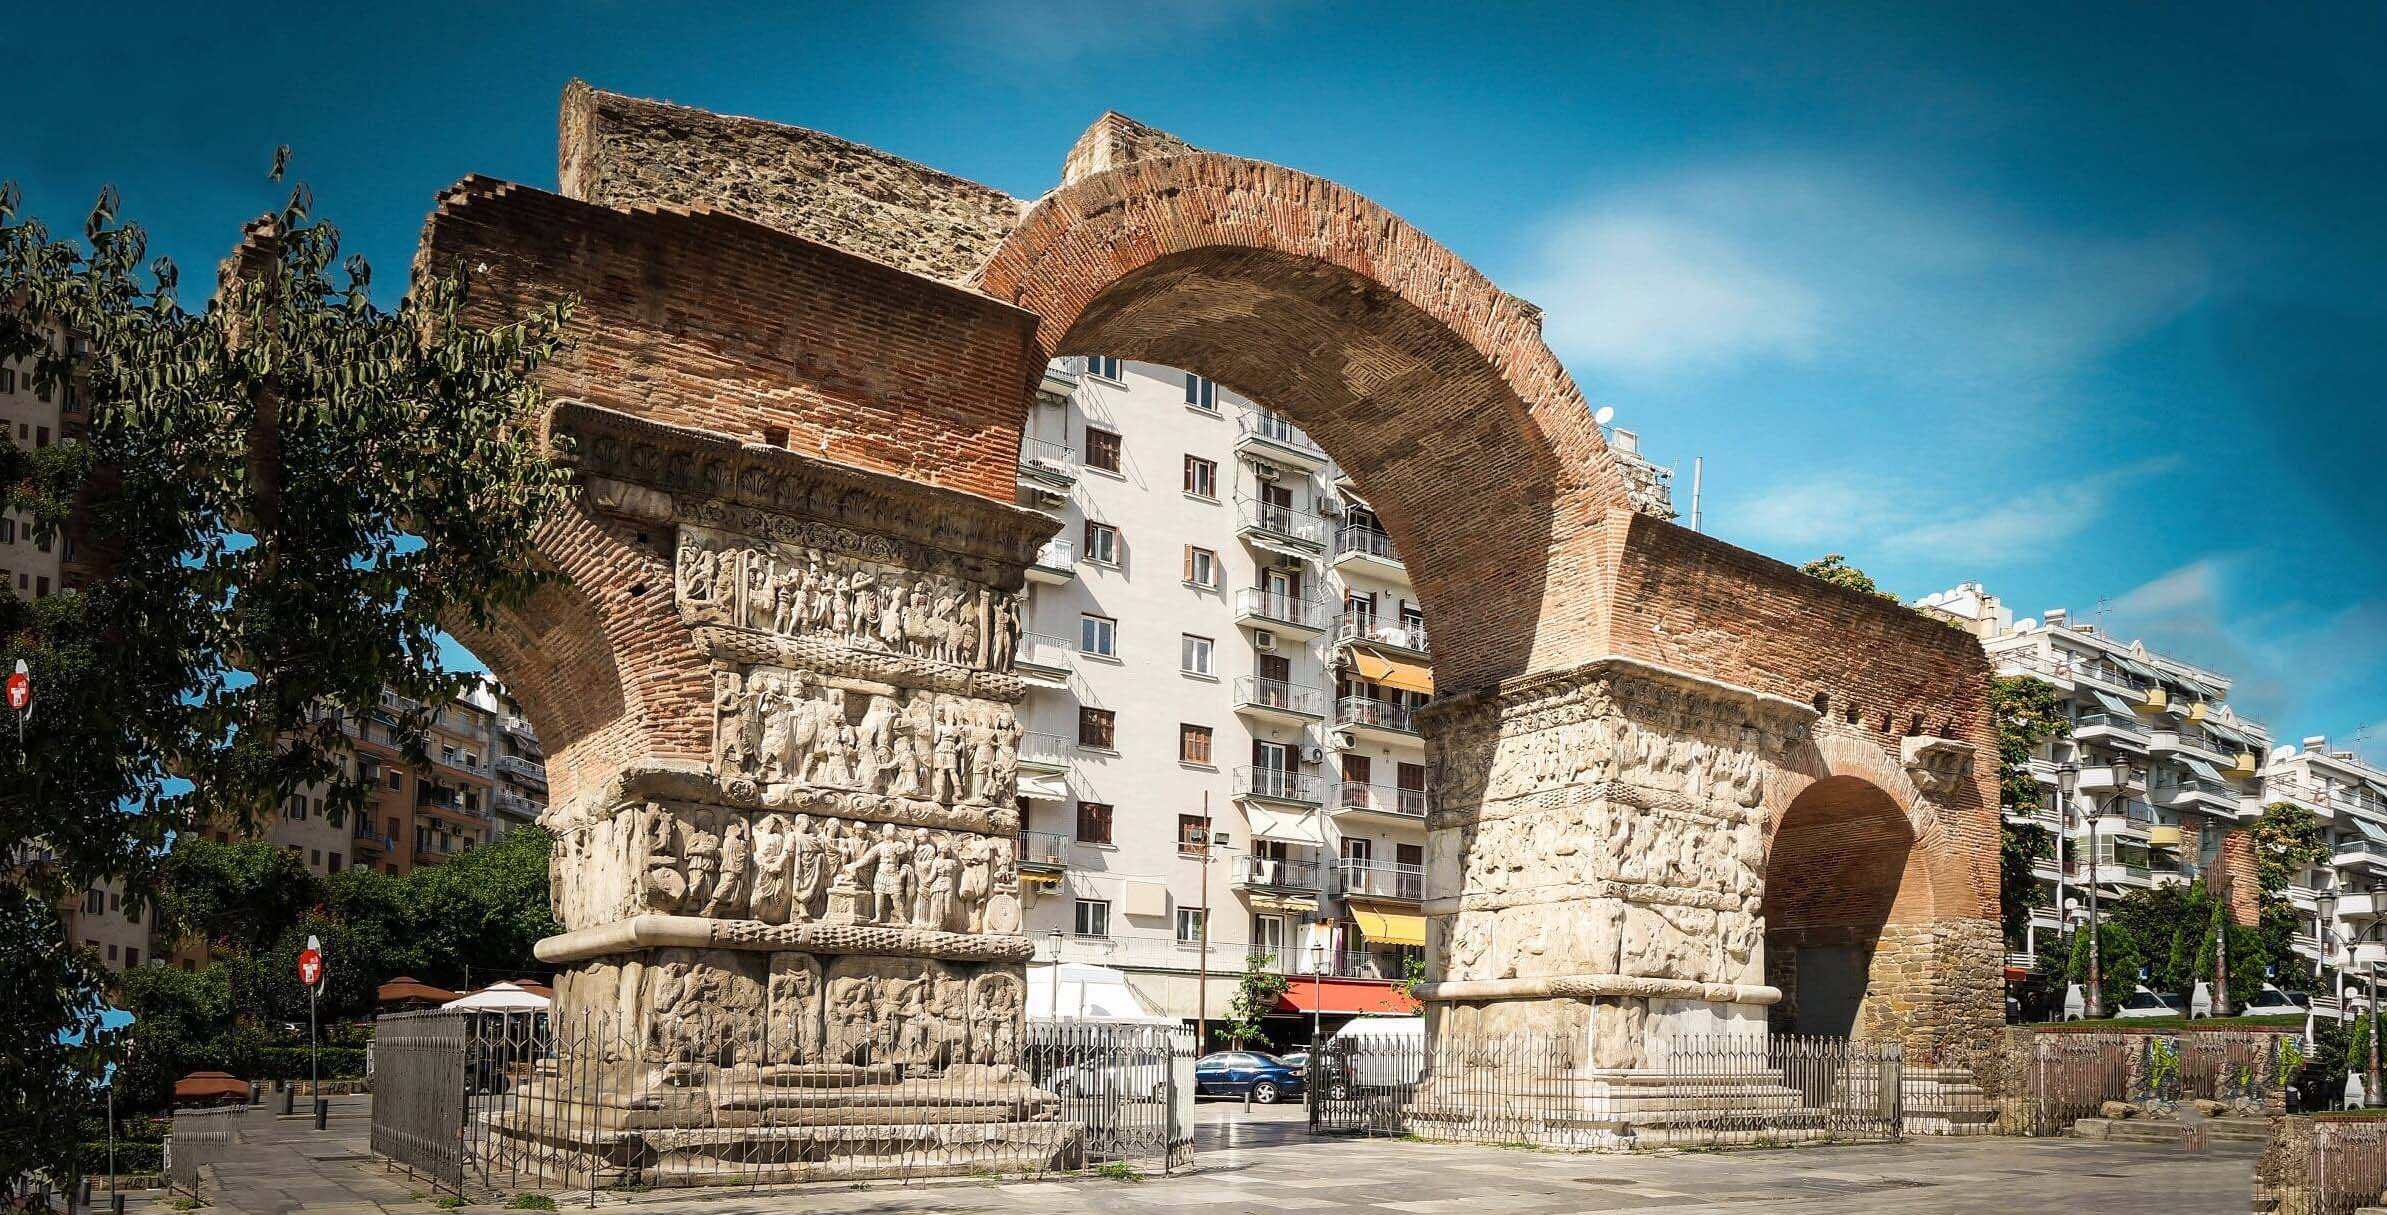 One-day excursion to Thessaloniki By bus